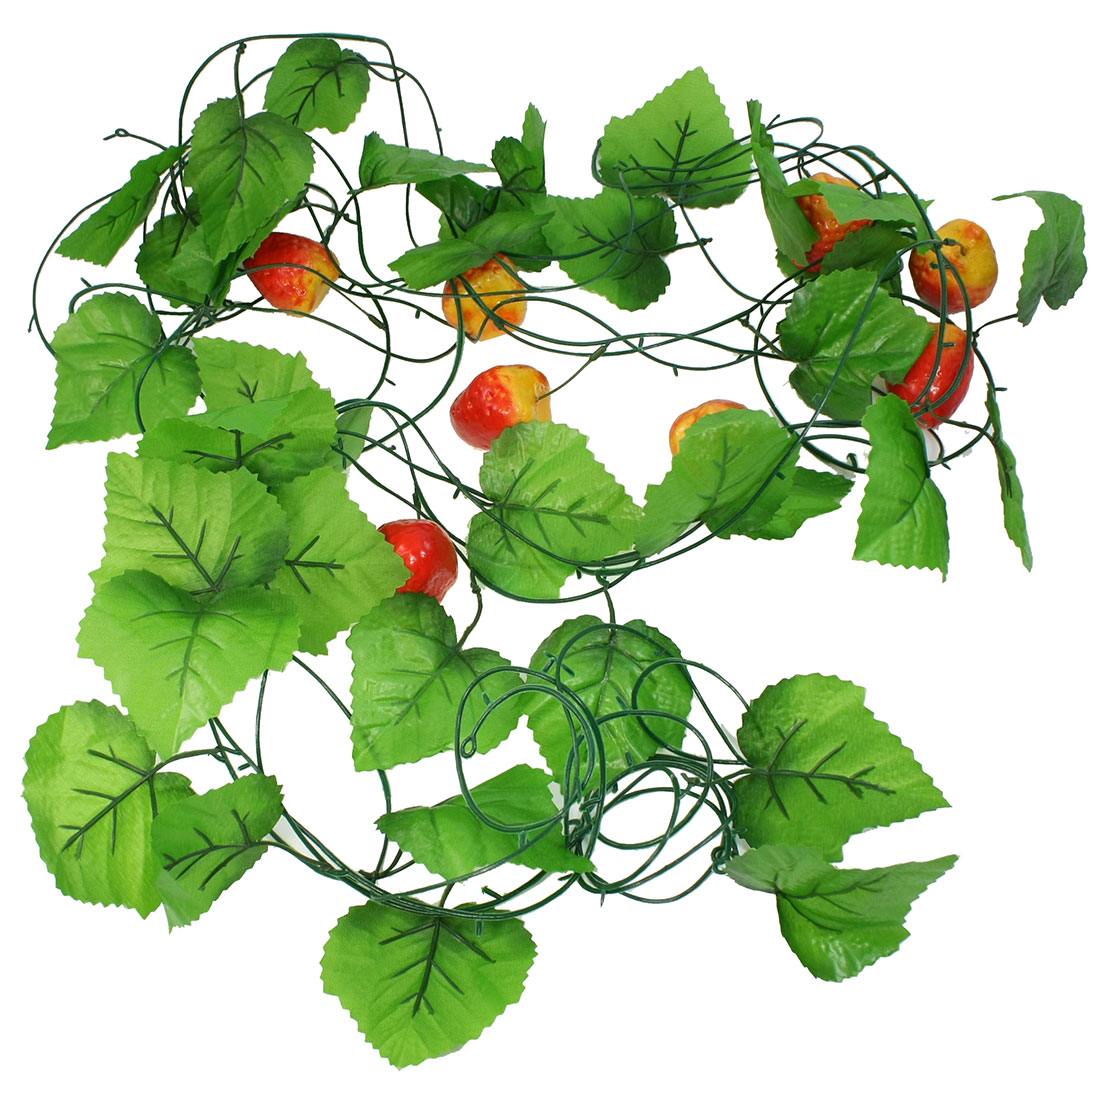 5 Pcs Green Leaf Emulation Strawberry Fruit Hanging Vine 7.5Ft Length